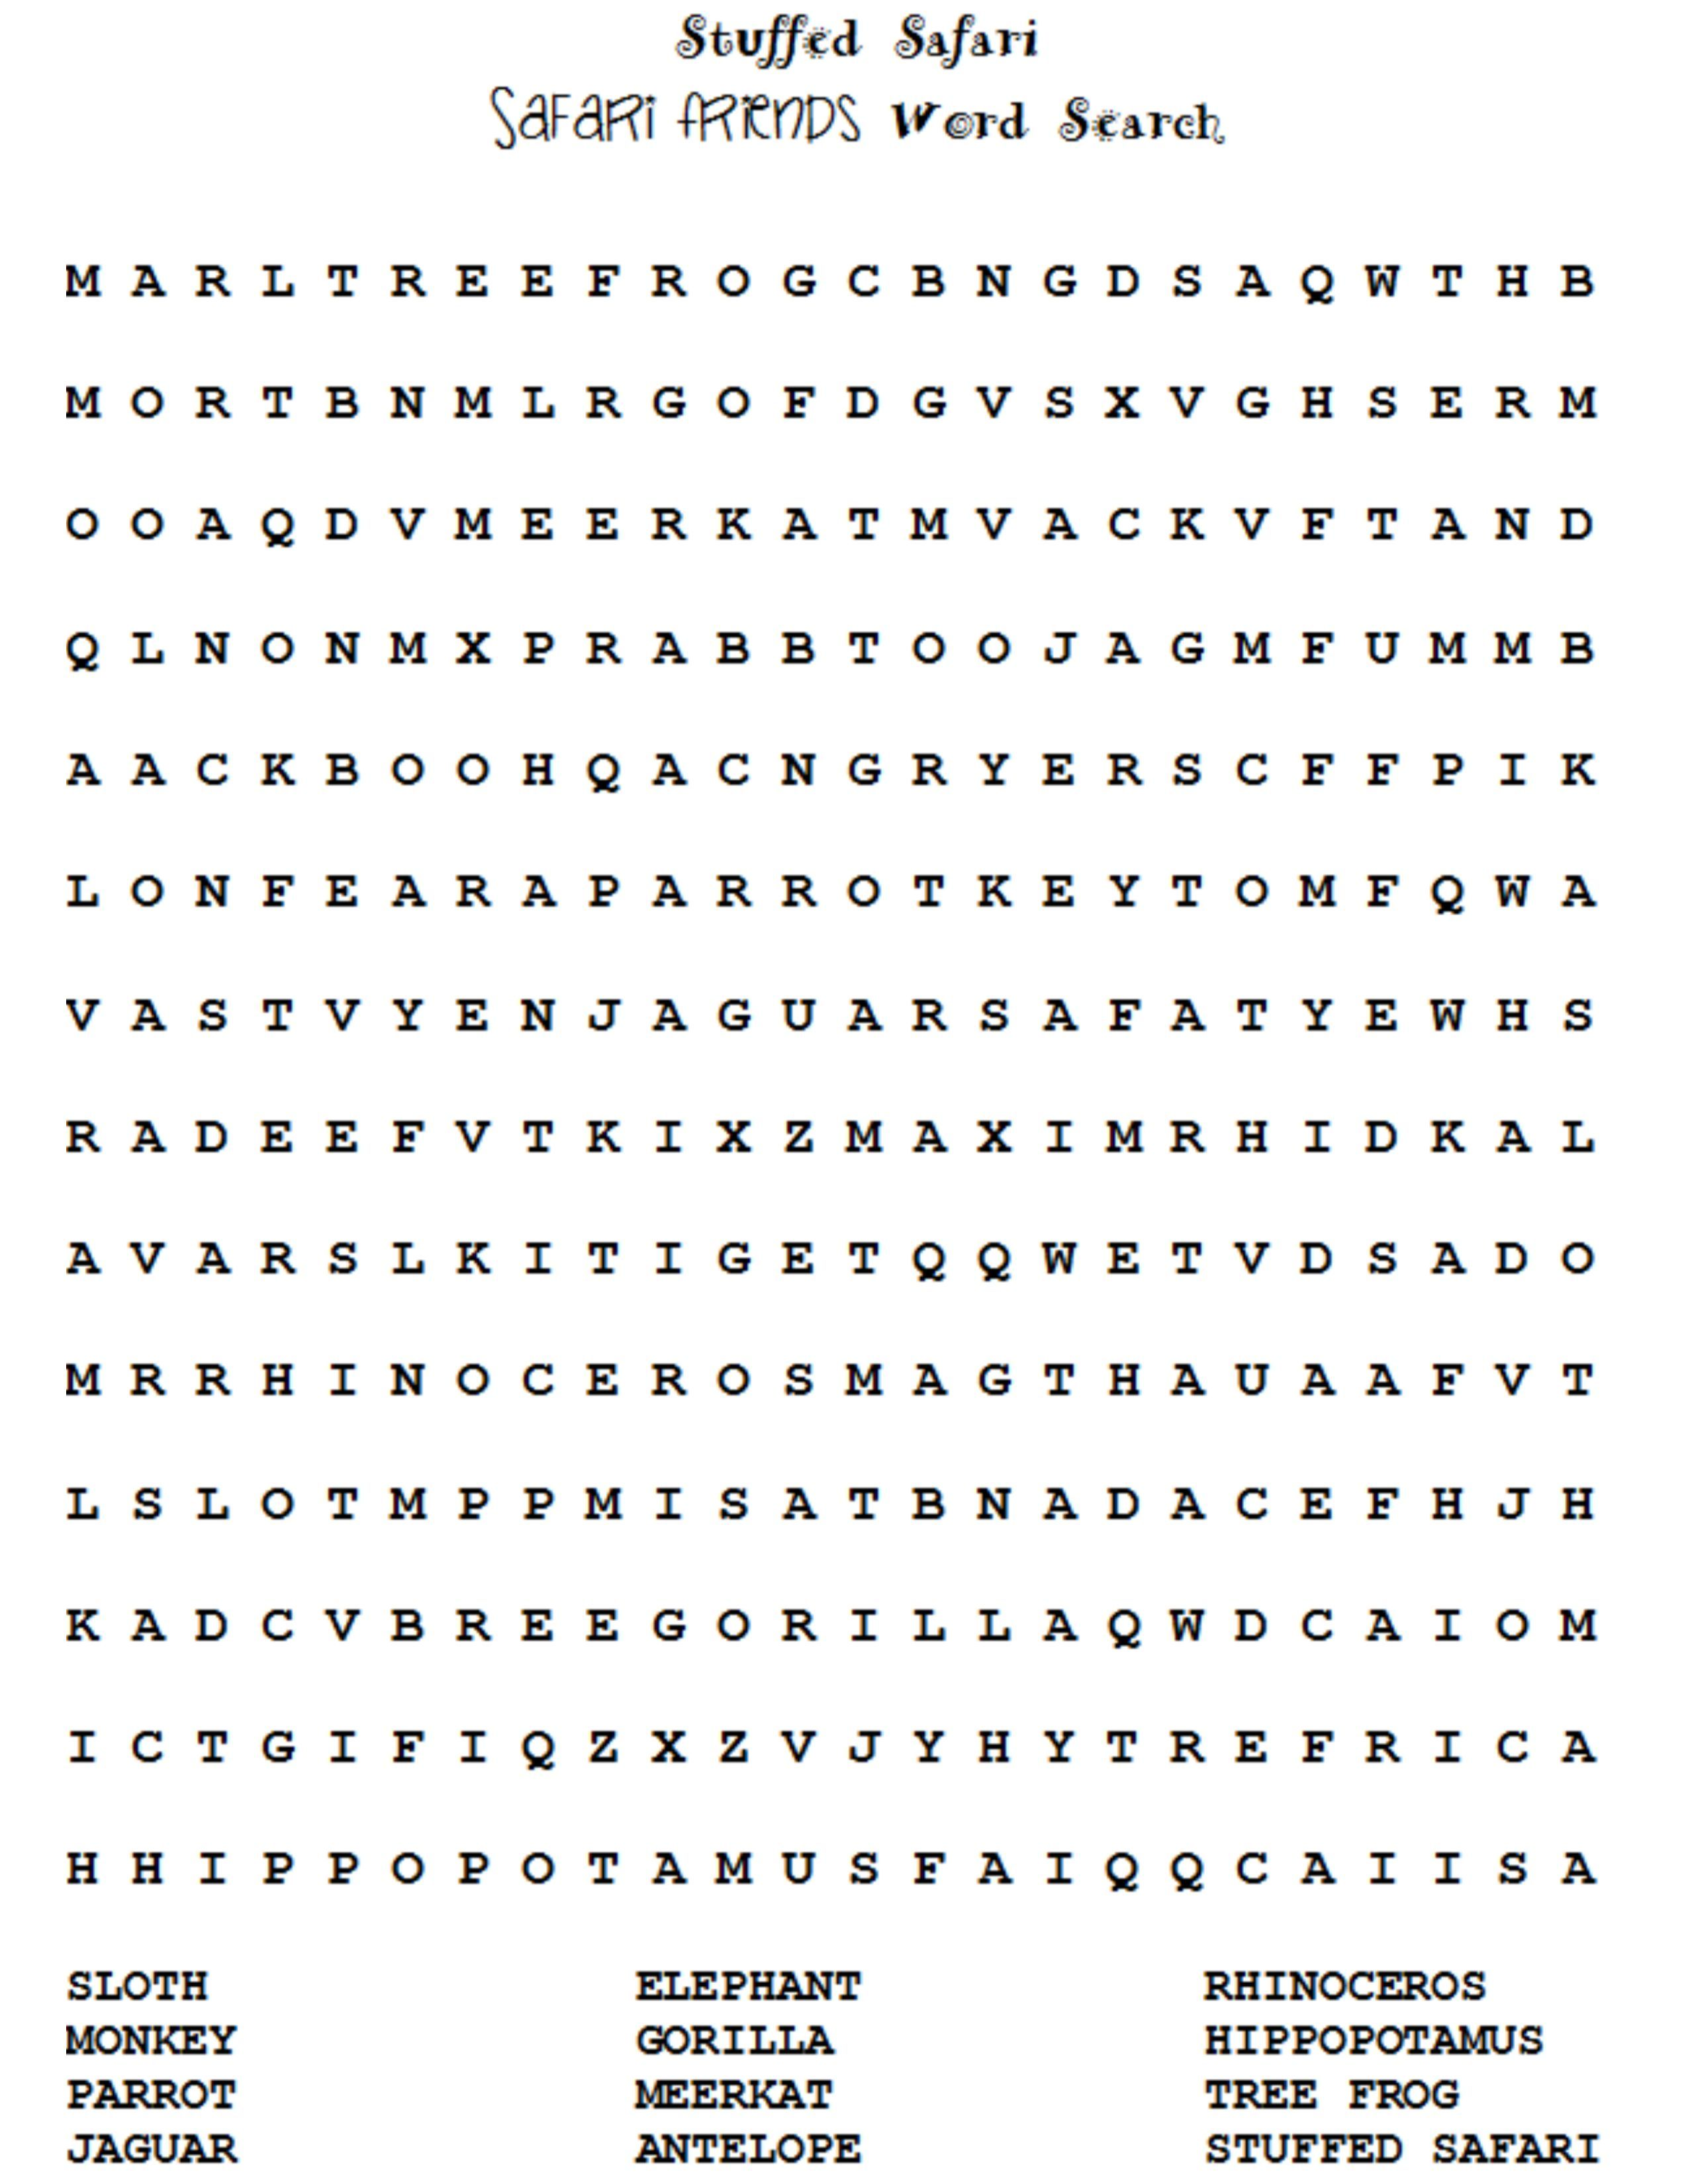 WOW! A free word search for a fun party game! Who will